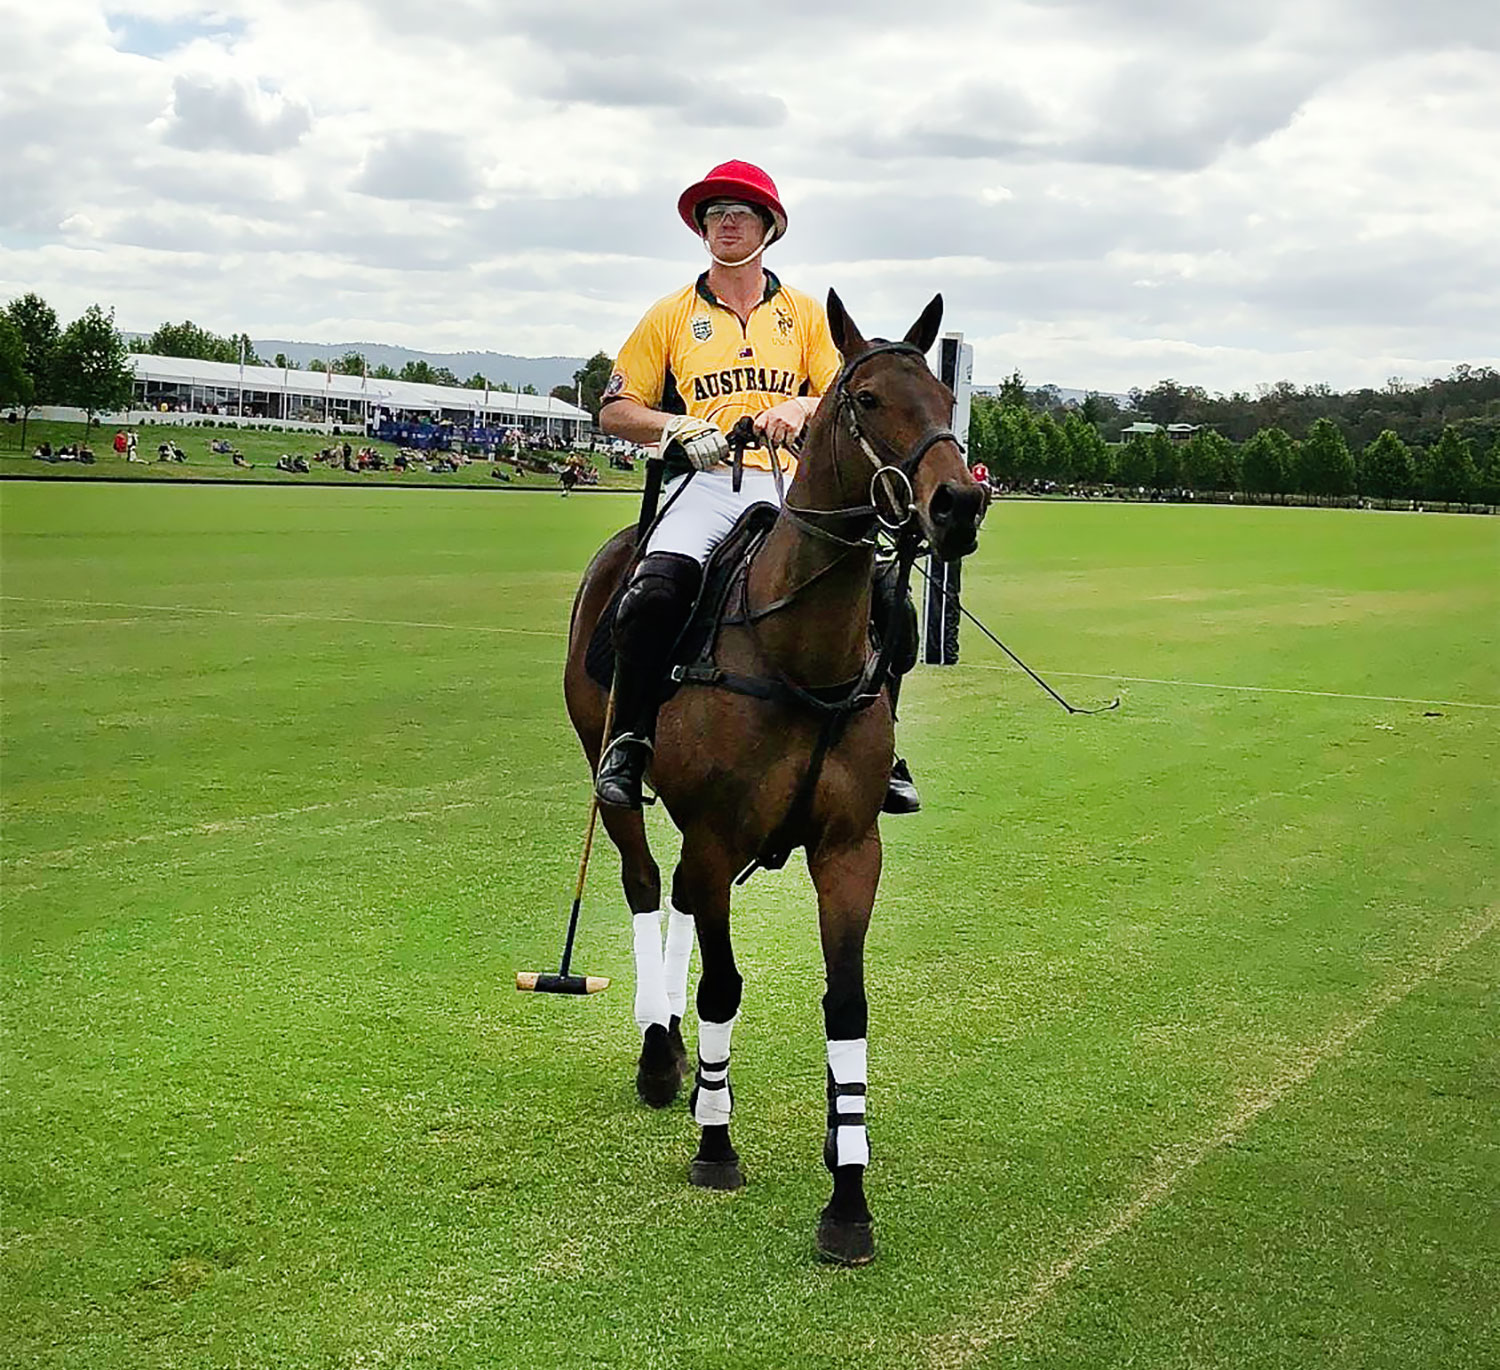 2017 Polo World Cup Australian team captain Jack Archibald plays at Portsea this weekend.